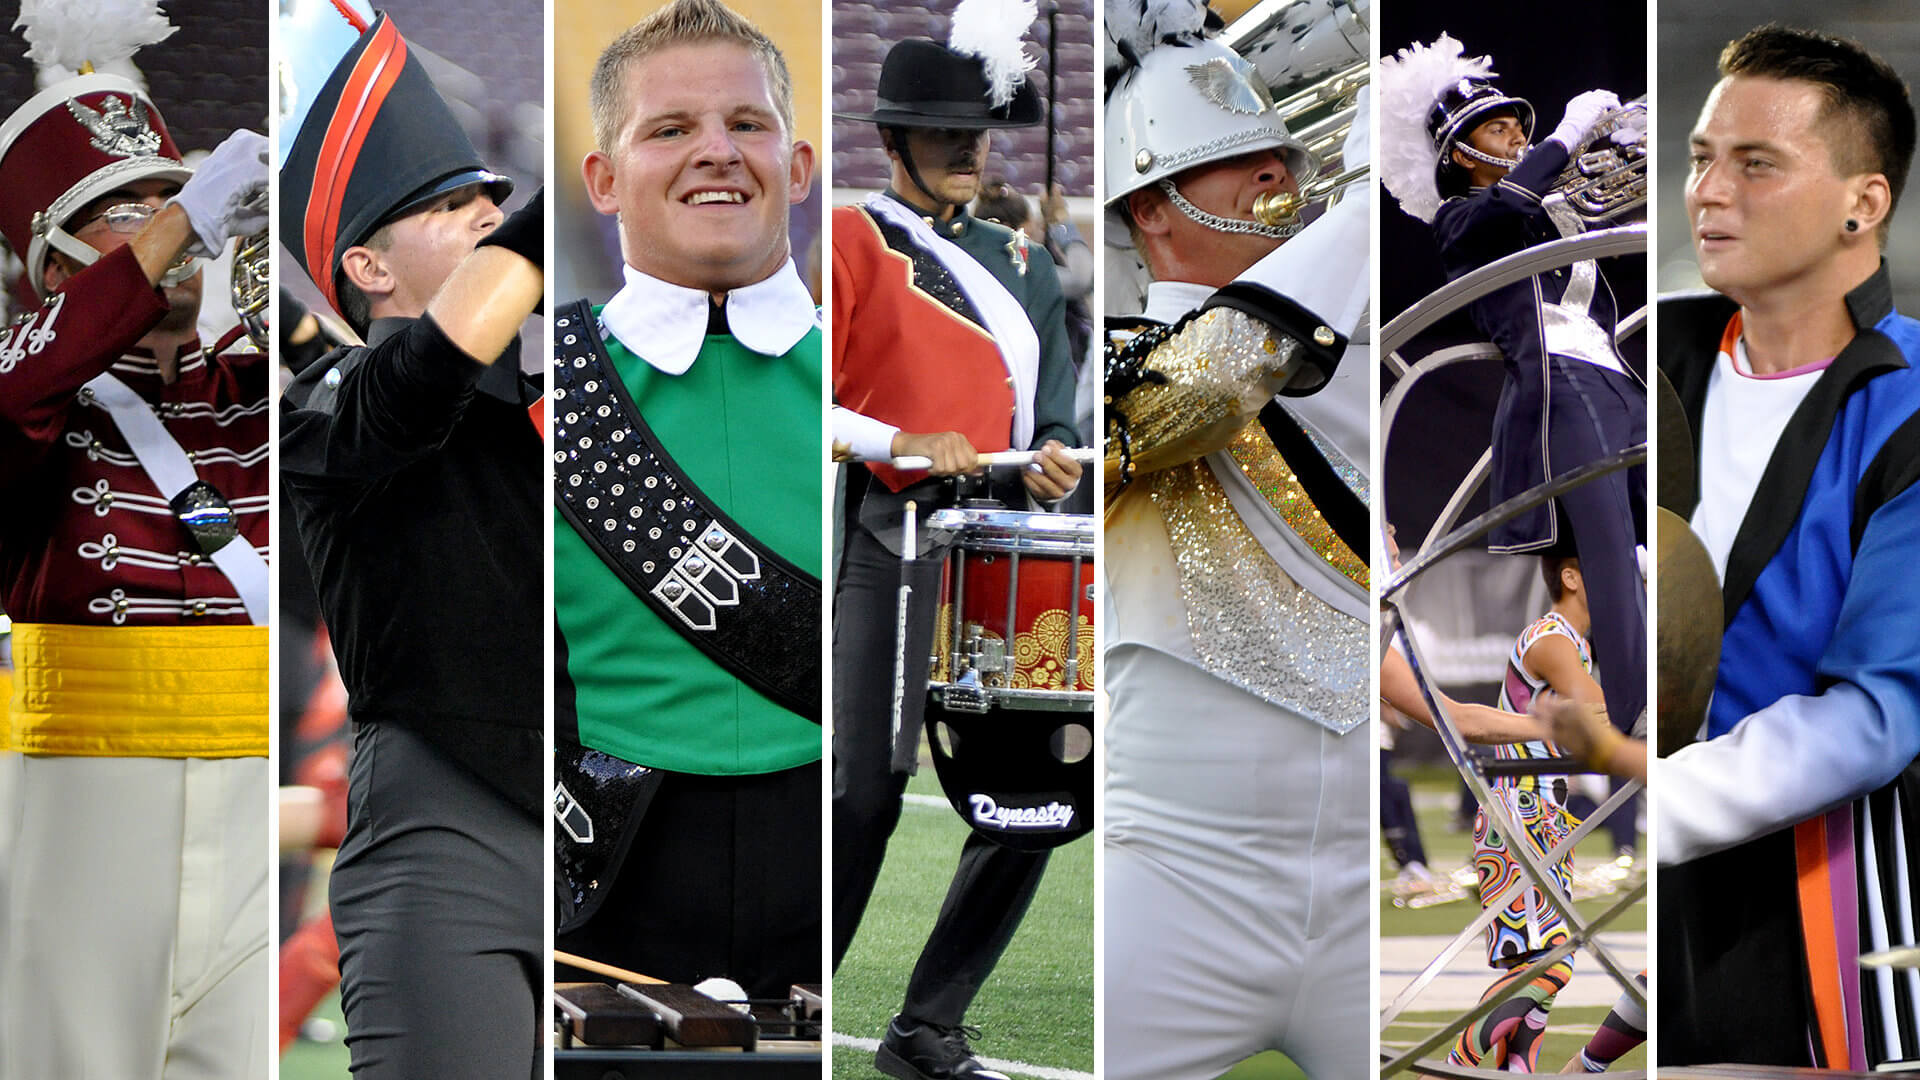 What to Watch: DCI Live! from Warrensburg, Missouri